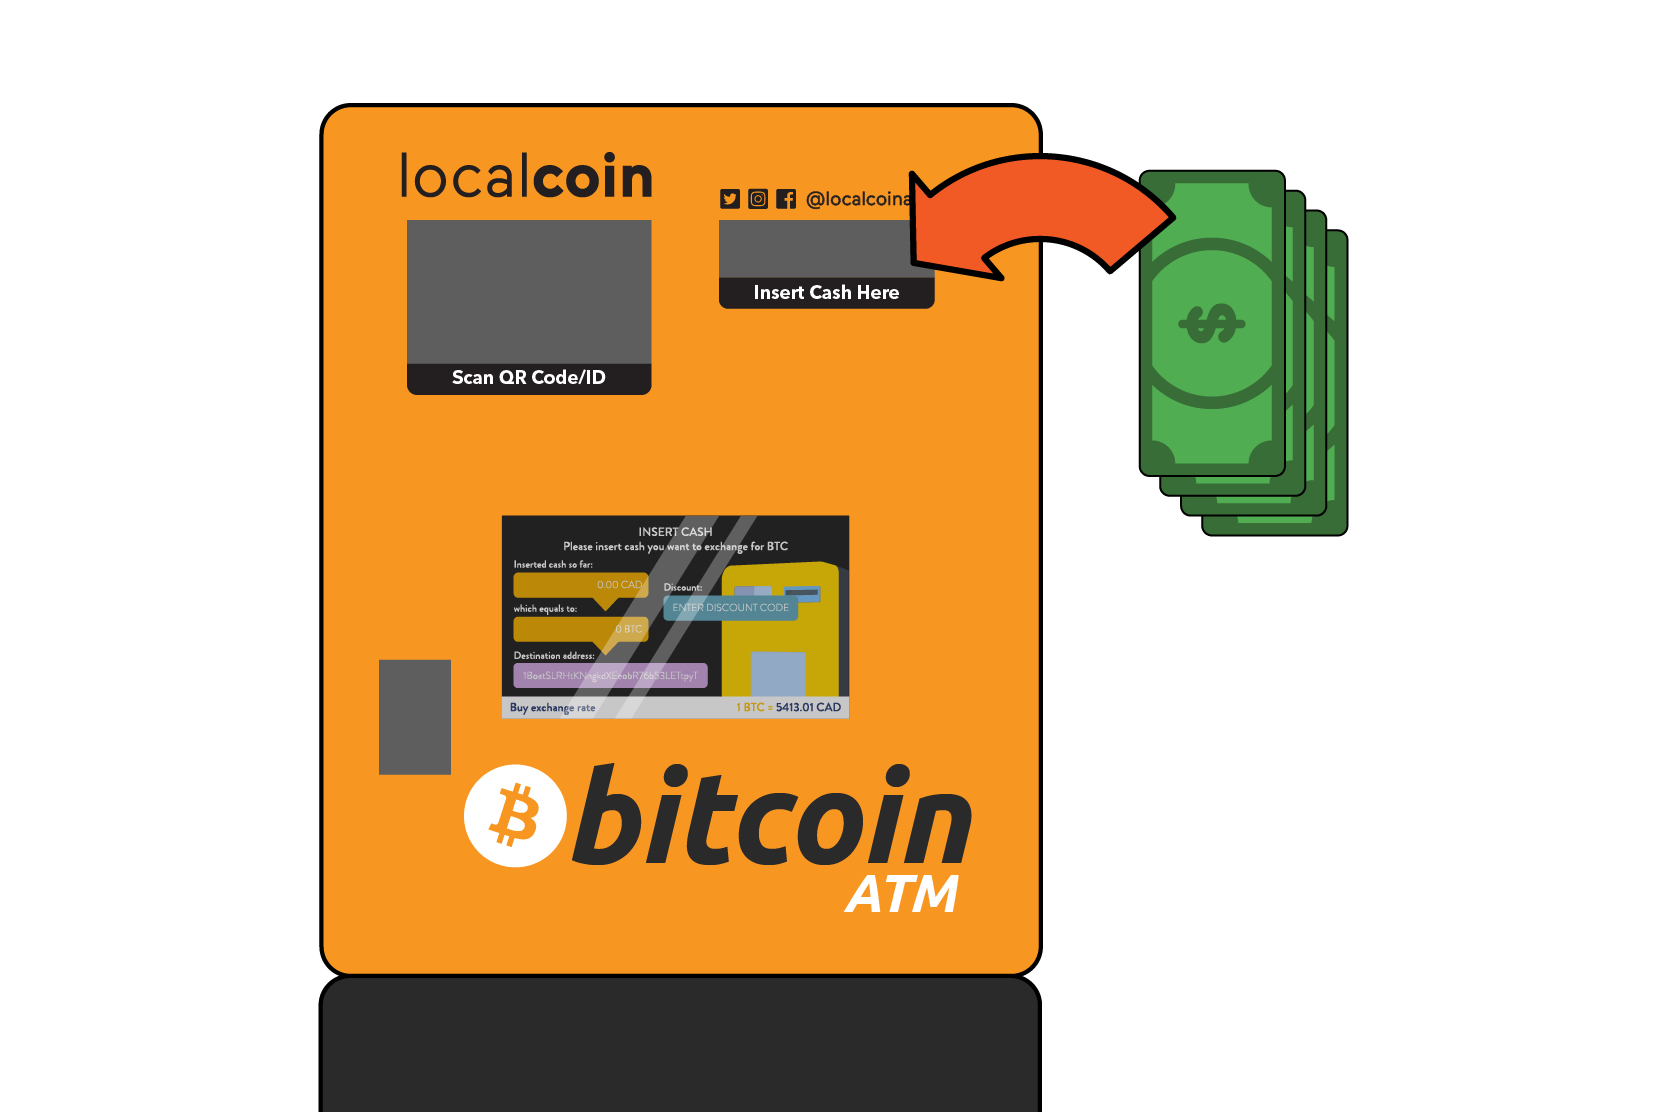 Purchasing Bitcoin at Bitcoin ATM